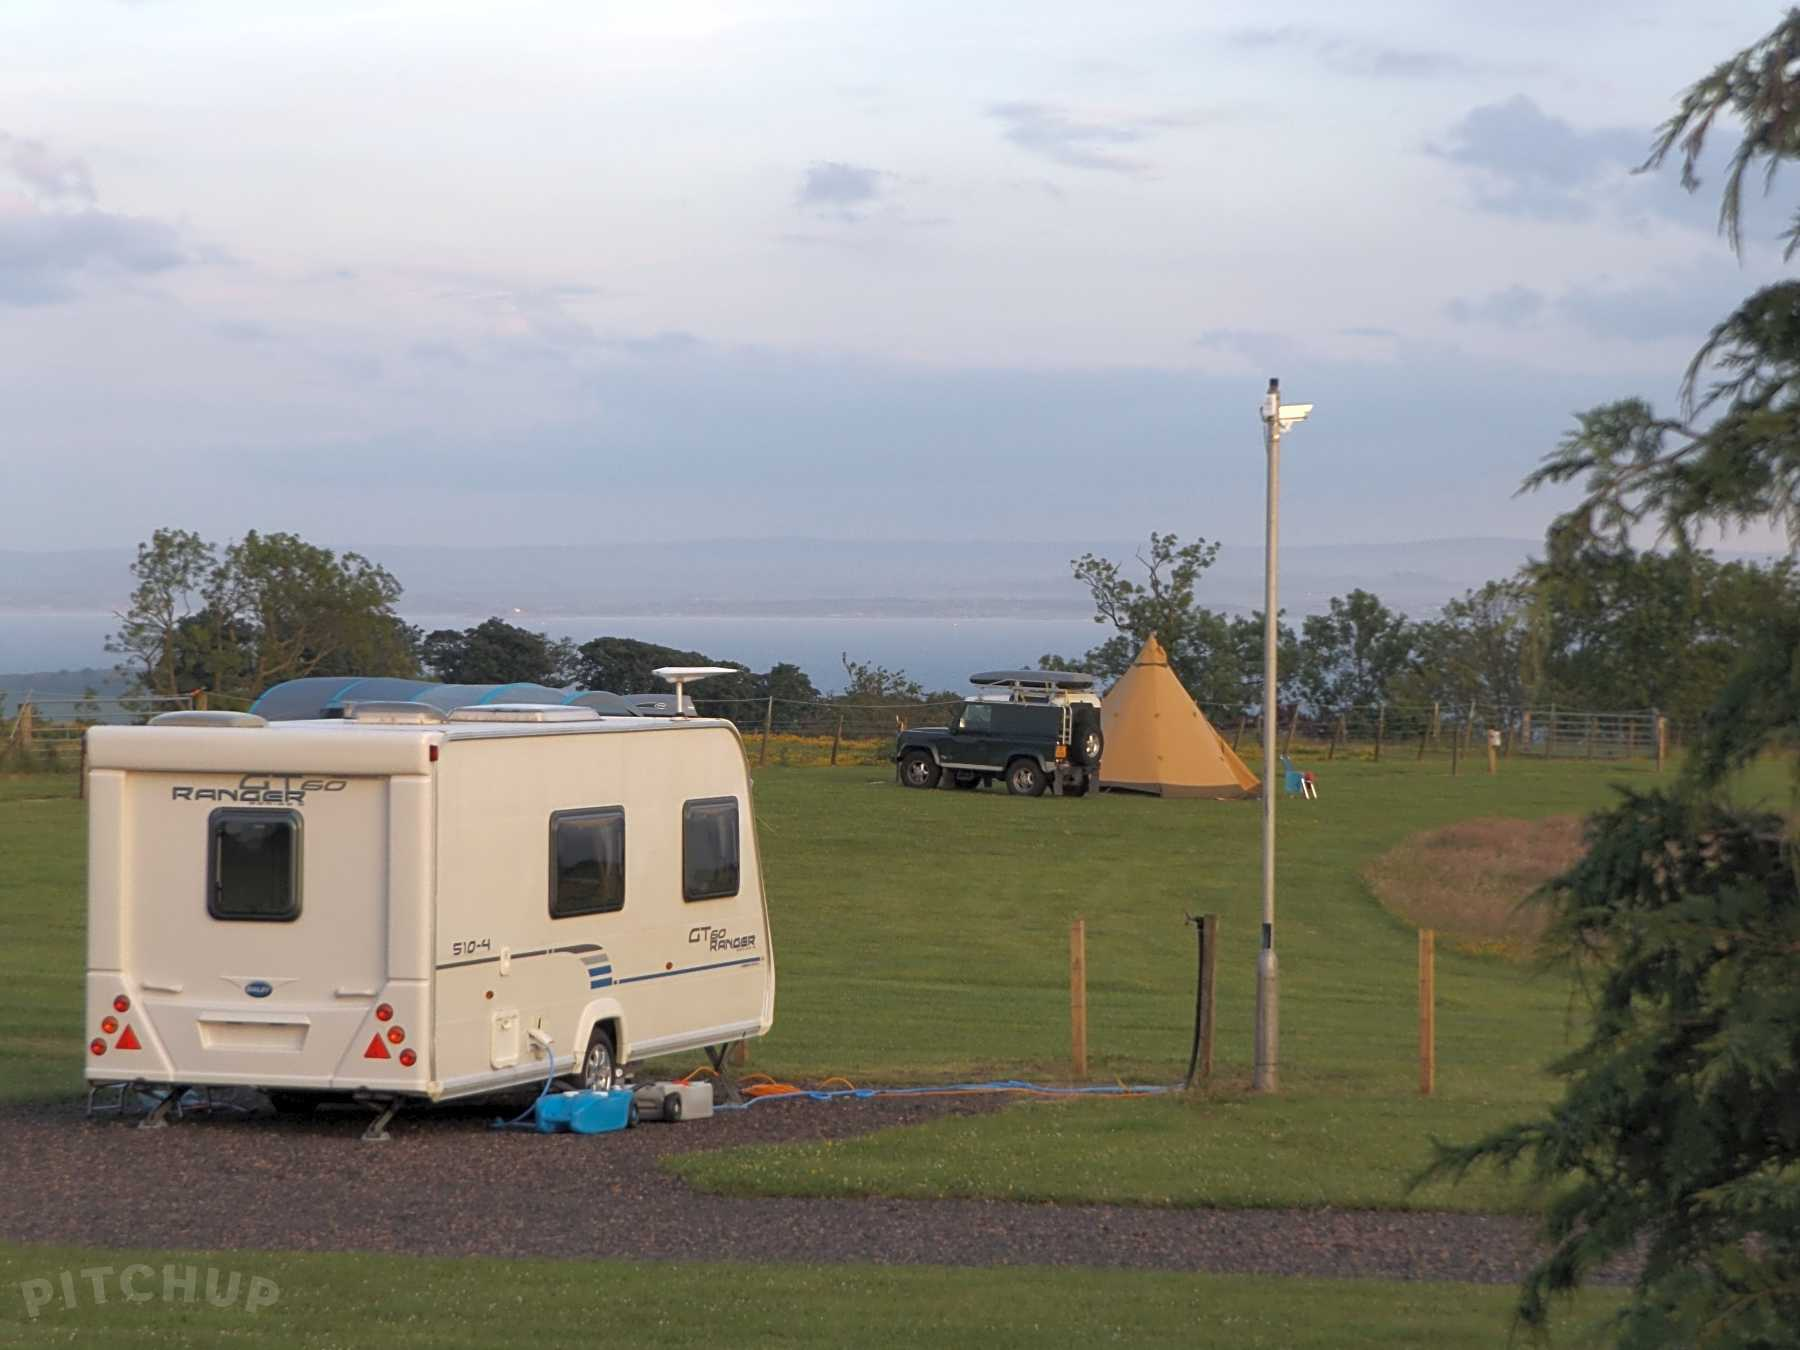 Best Campsites in Fife 2019 - Book 4 Campsites on Pitchup®